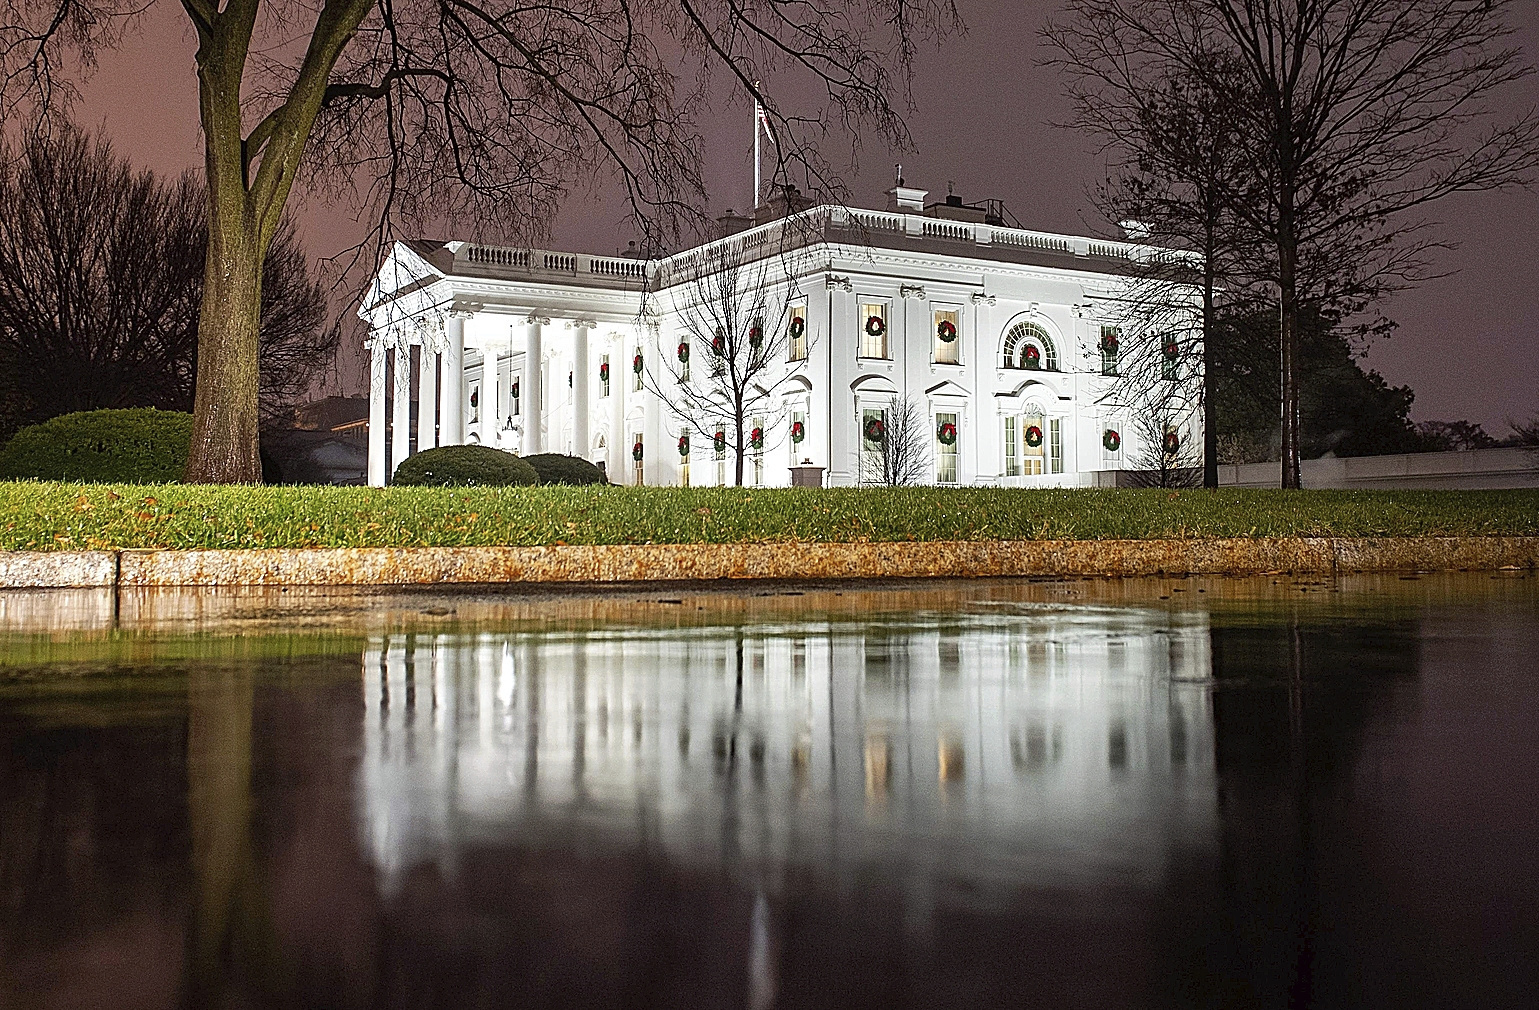 View of the White House at night in Washington.